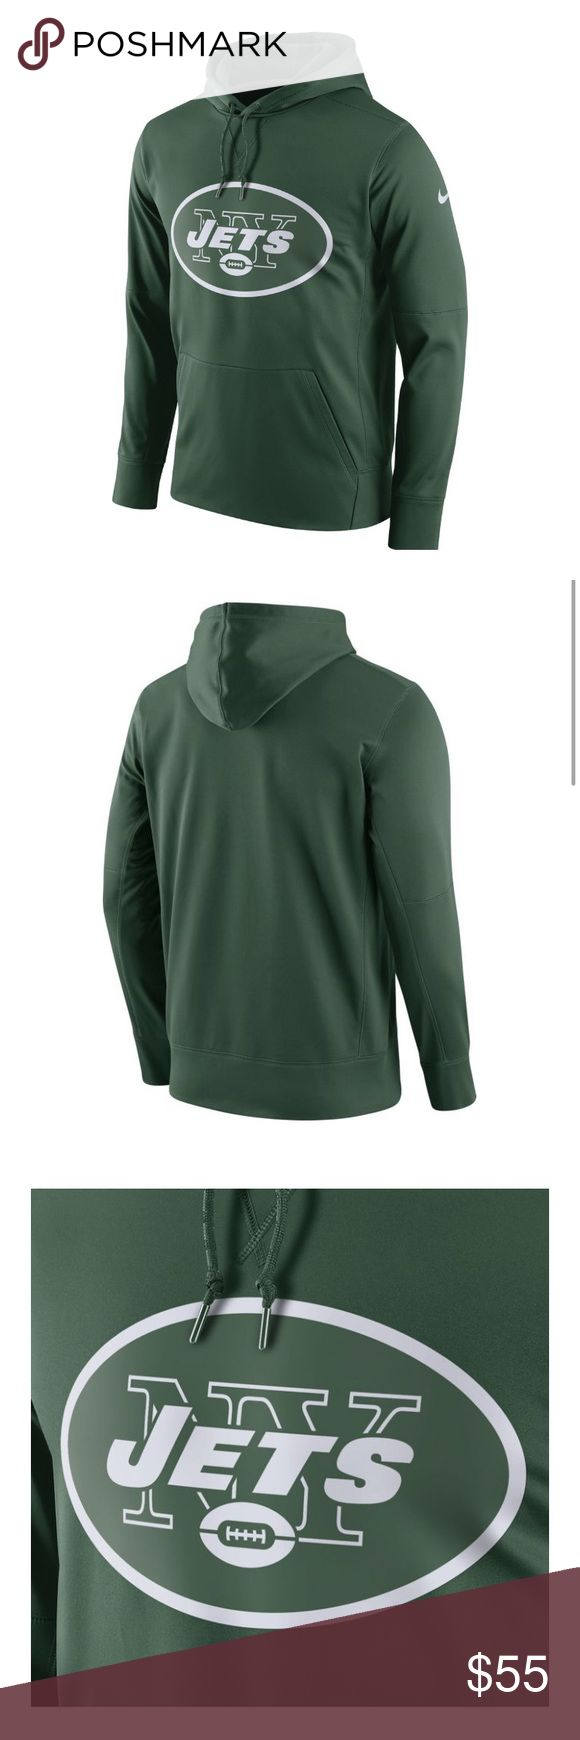 Nike New York Jets Essential Green Hoodie Large Nike Men's New York Jets Performance Circuit Logo Essential Green Hoodie   Product Information: Standard Fit, Hooded Sweatshirt Drawstring-adjustable hood Kangaroo pouch pocket Tagless neck label  Screen-Printed Team Graphics Silicone team logo printed on the chest Official NFL shield  Warm, Insulated Fabric Technology Therma-FIT® insulation keeps you warm and comfortable  Additional Details Officially licensed by the NFL Fabric: 100% polyester…